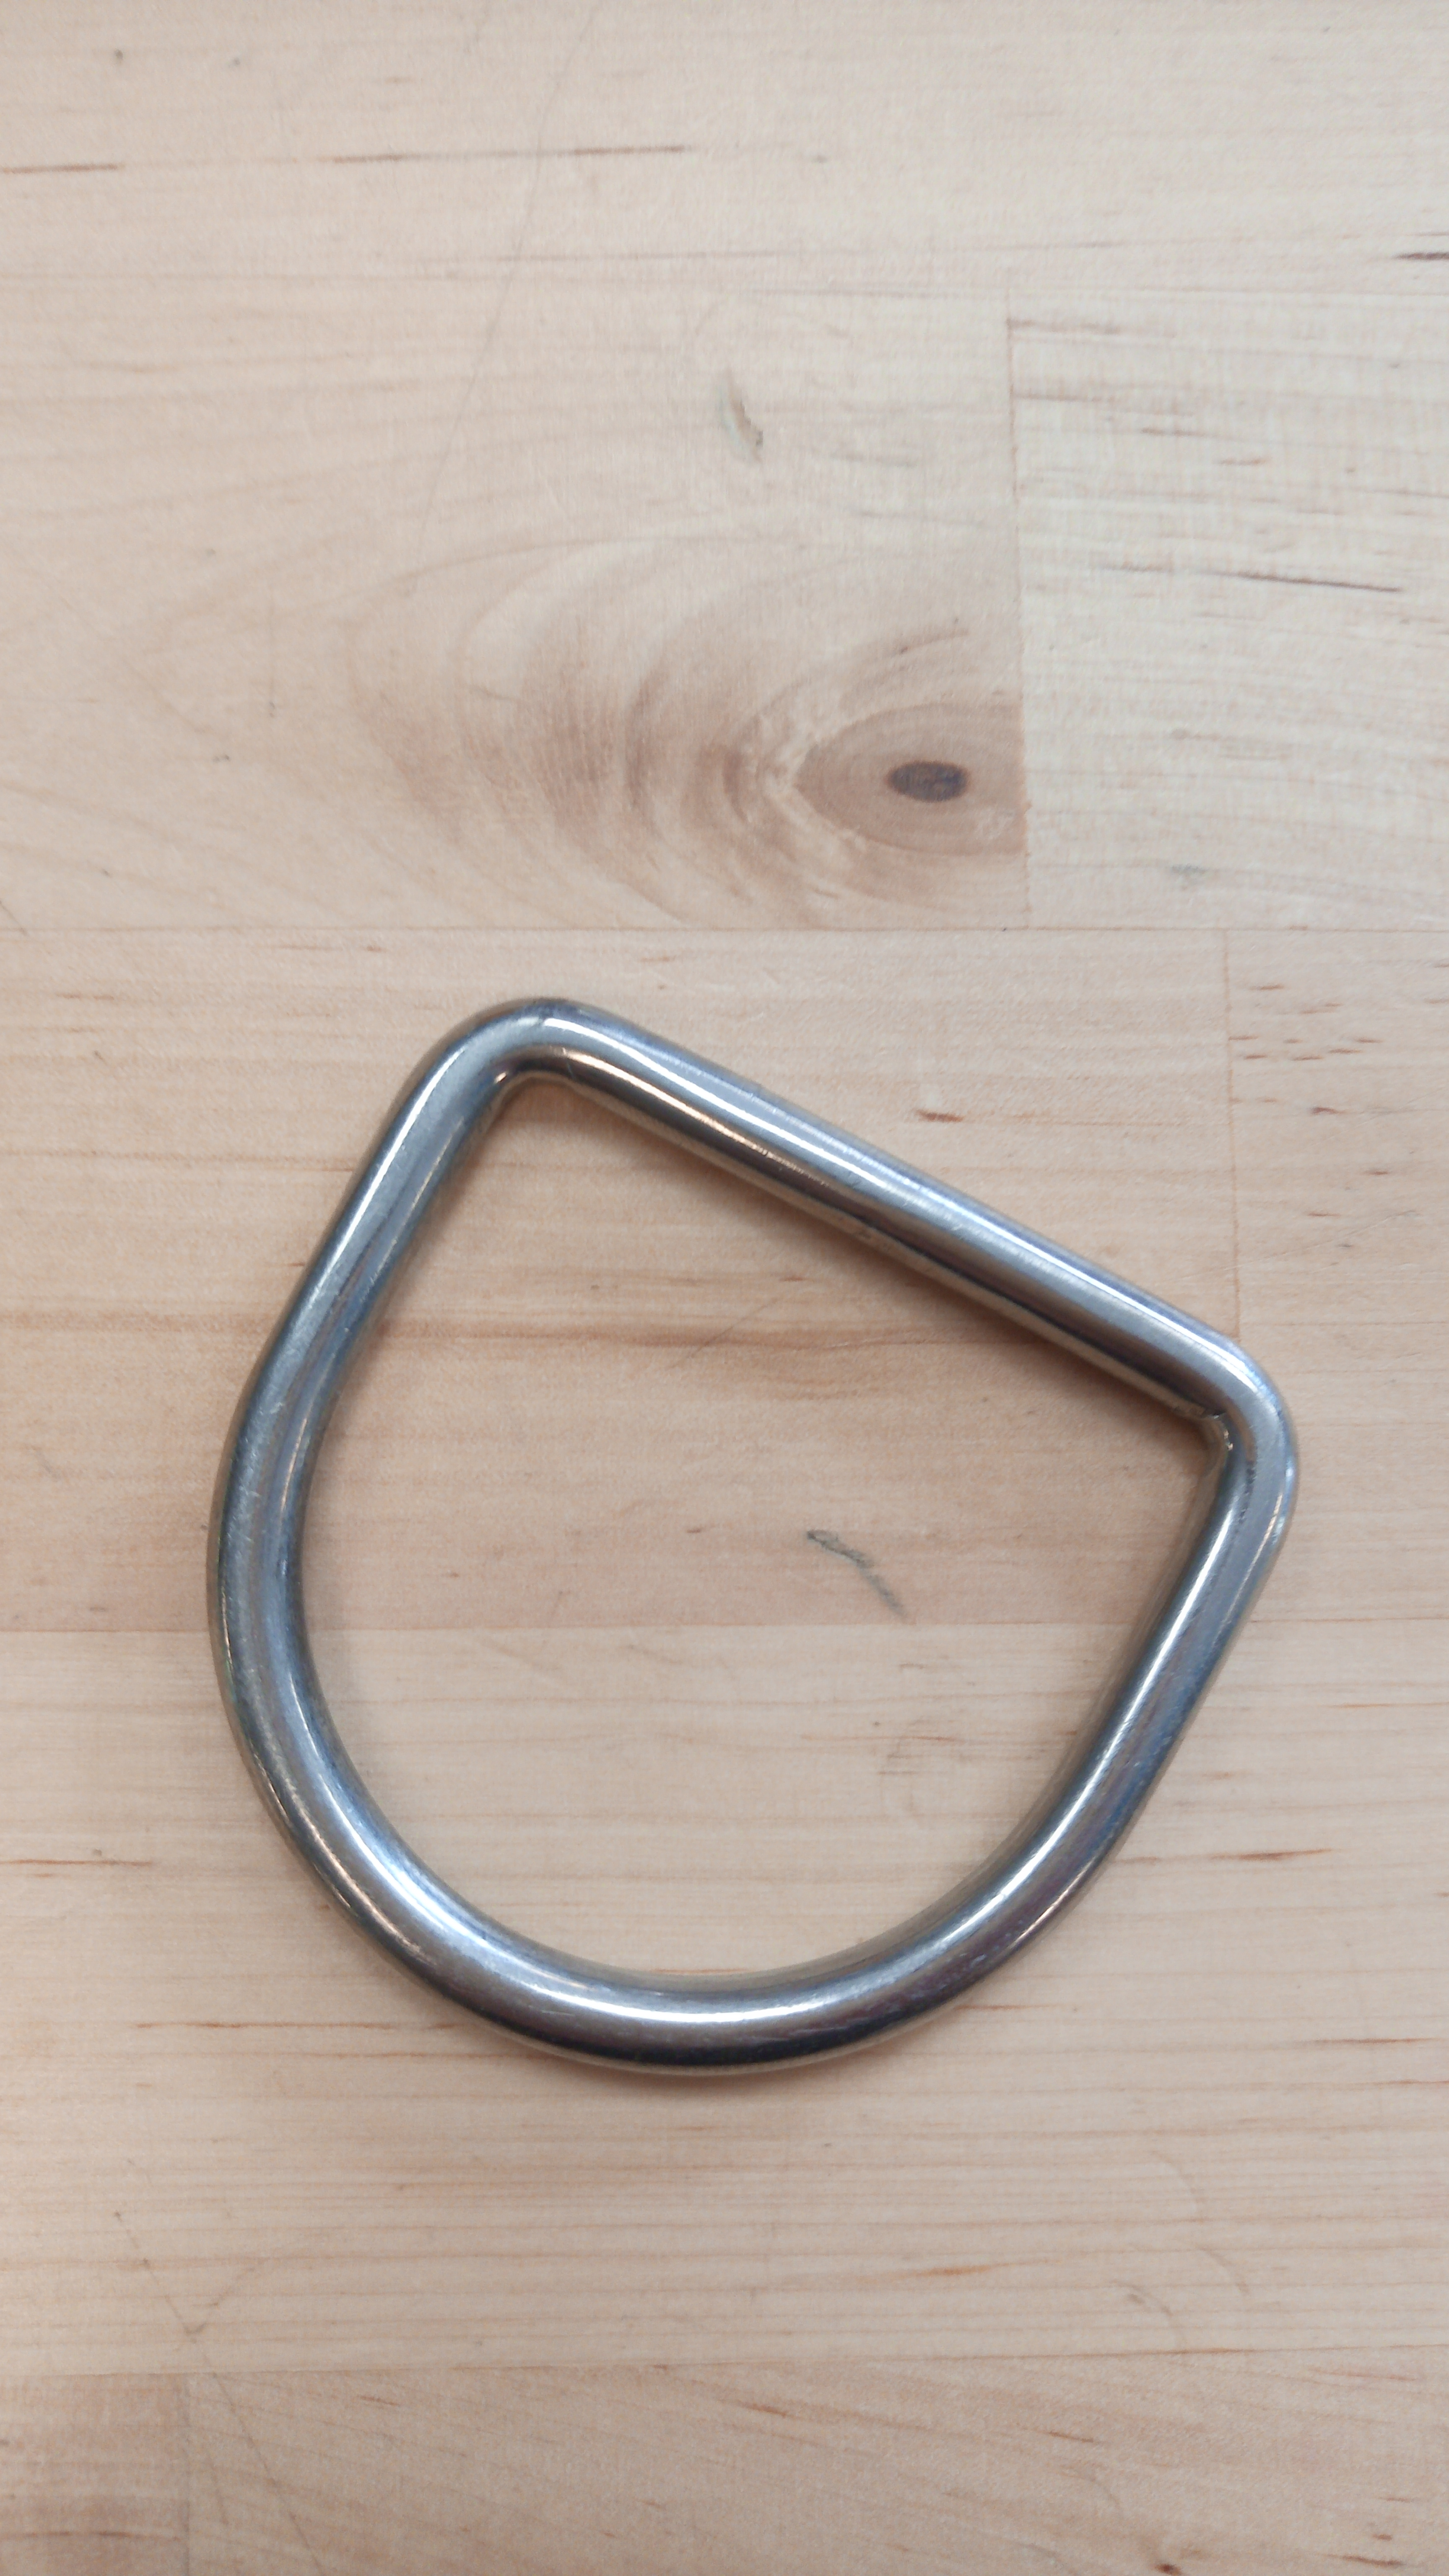 RVS D-ring removable W 55mm x H 50mm